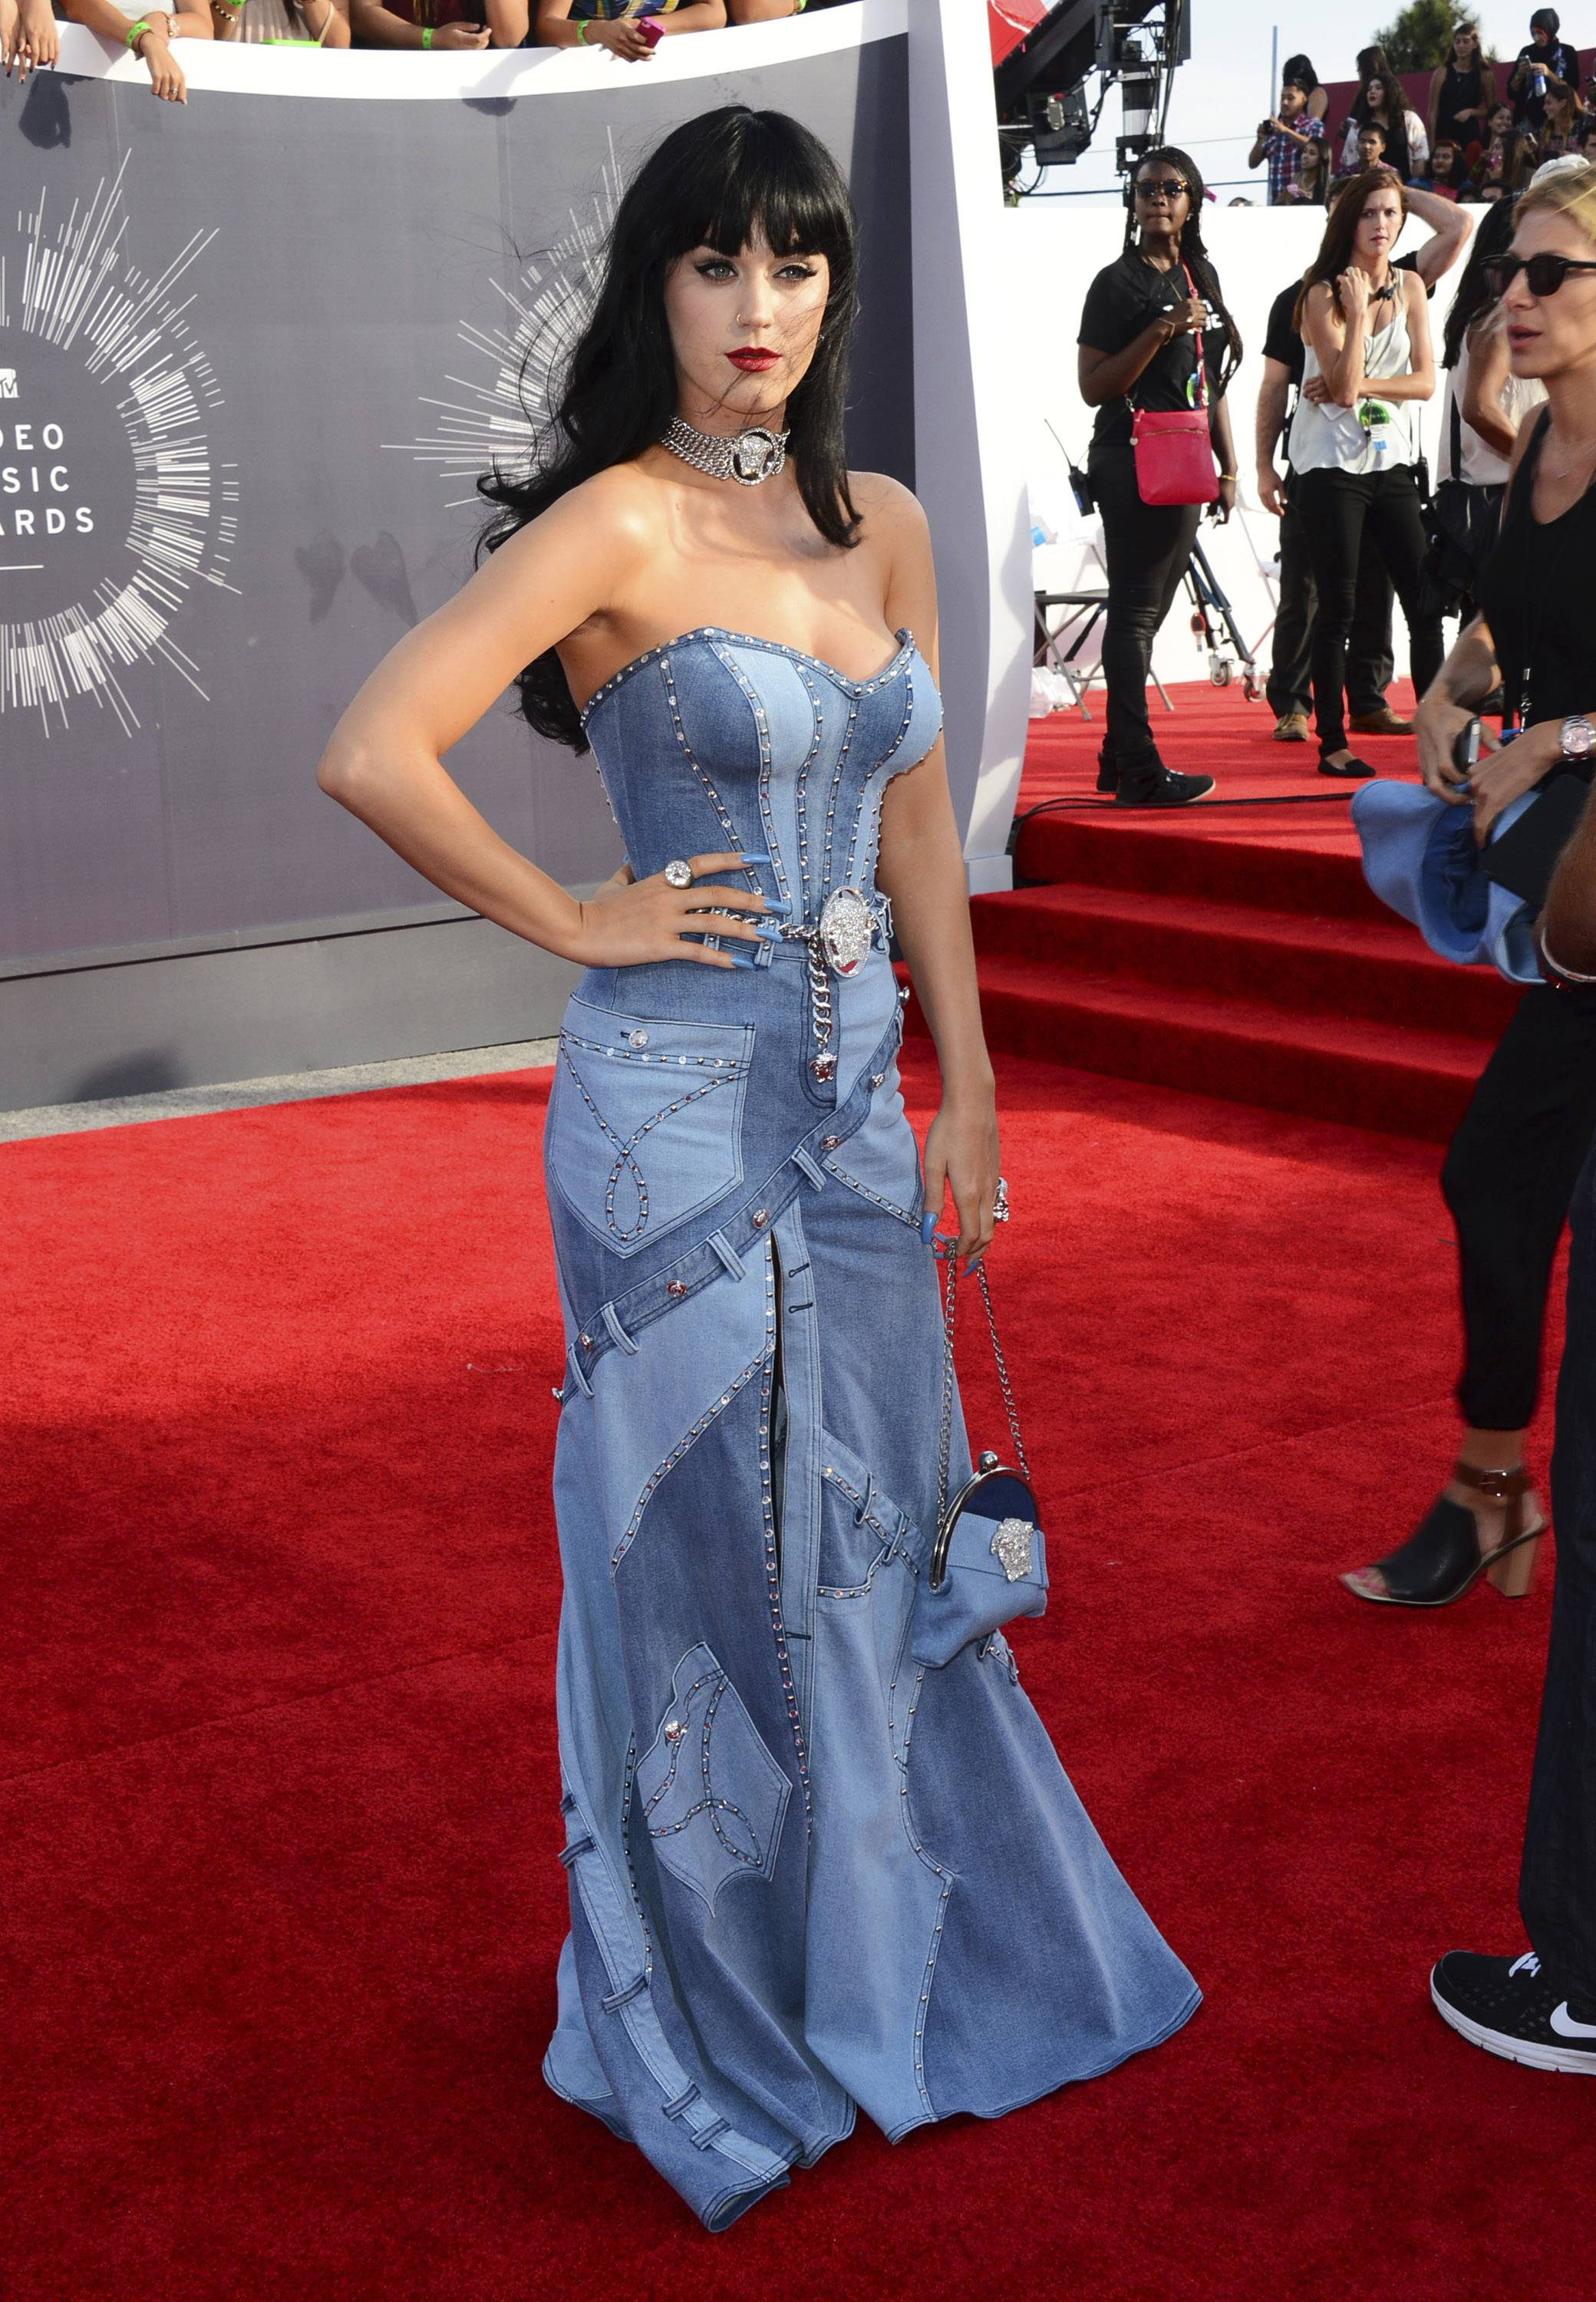 Katy Perry sports a denim ensemble on the red carpet at MTV Video Music Awards.